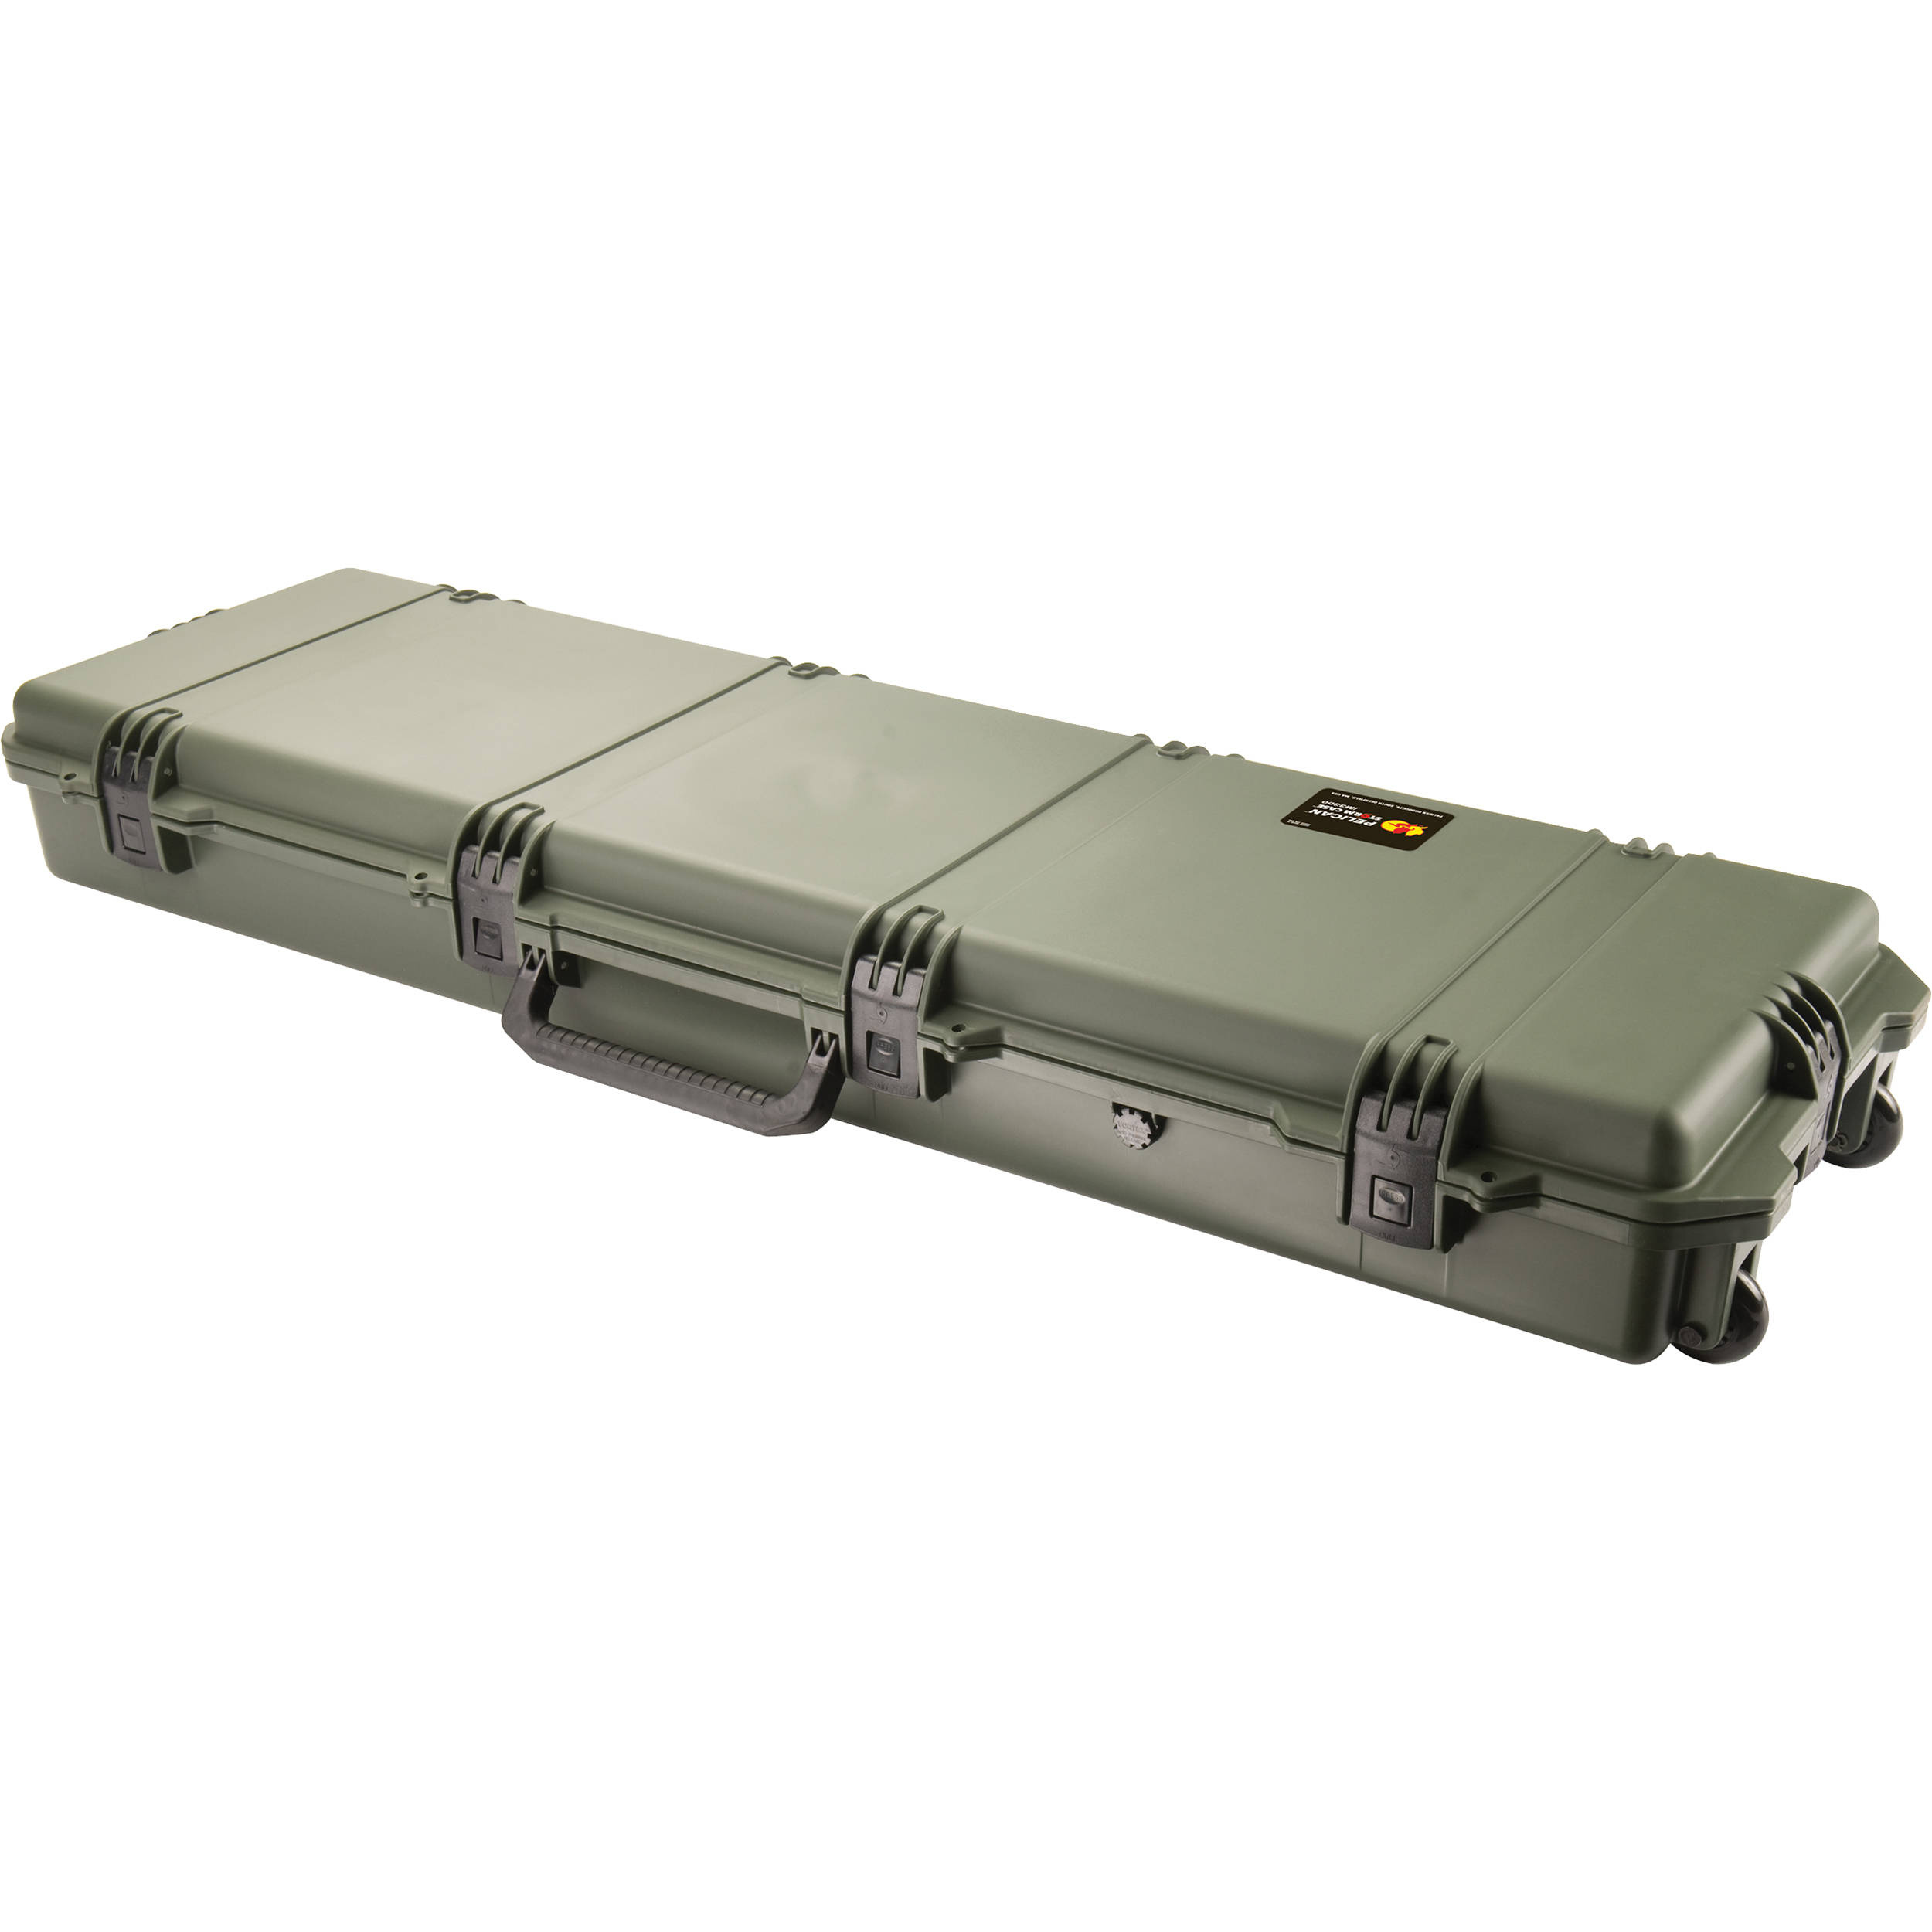 Pelican iM3300 Storm Case without Foam (Olive Drab Green)